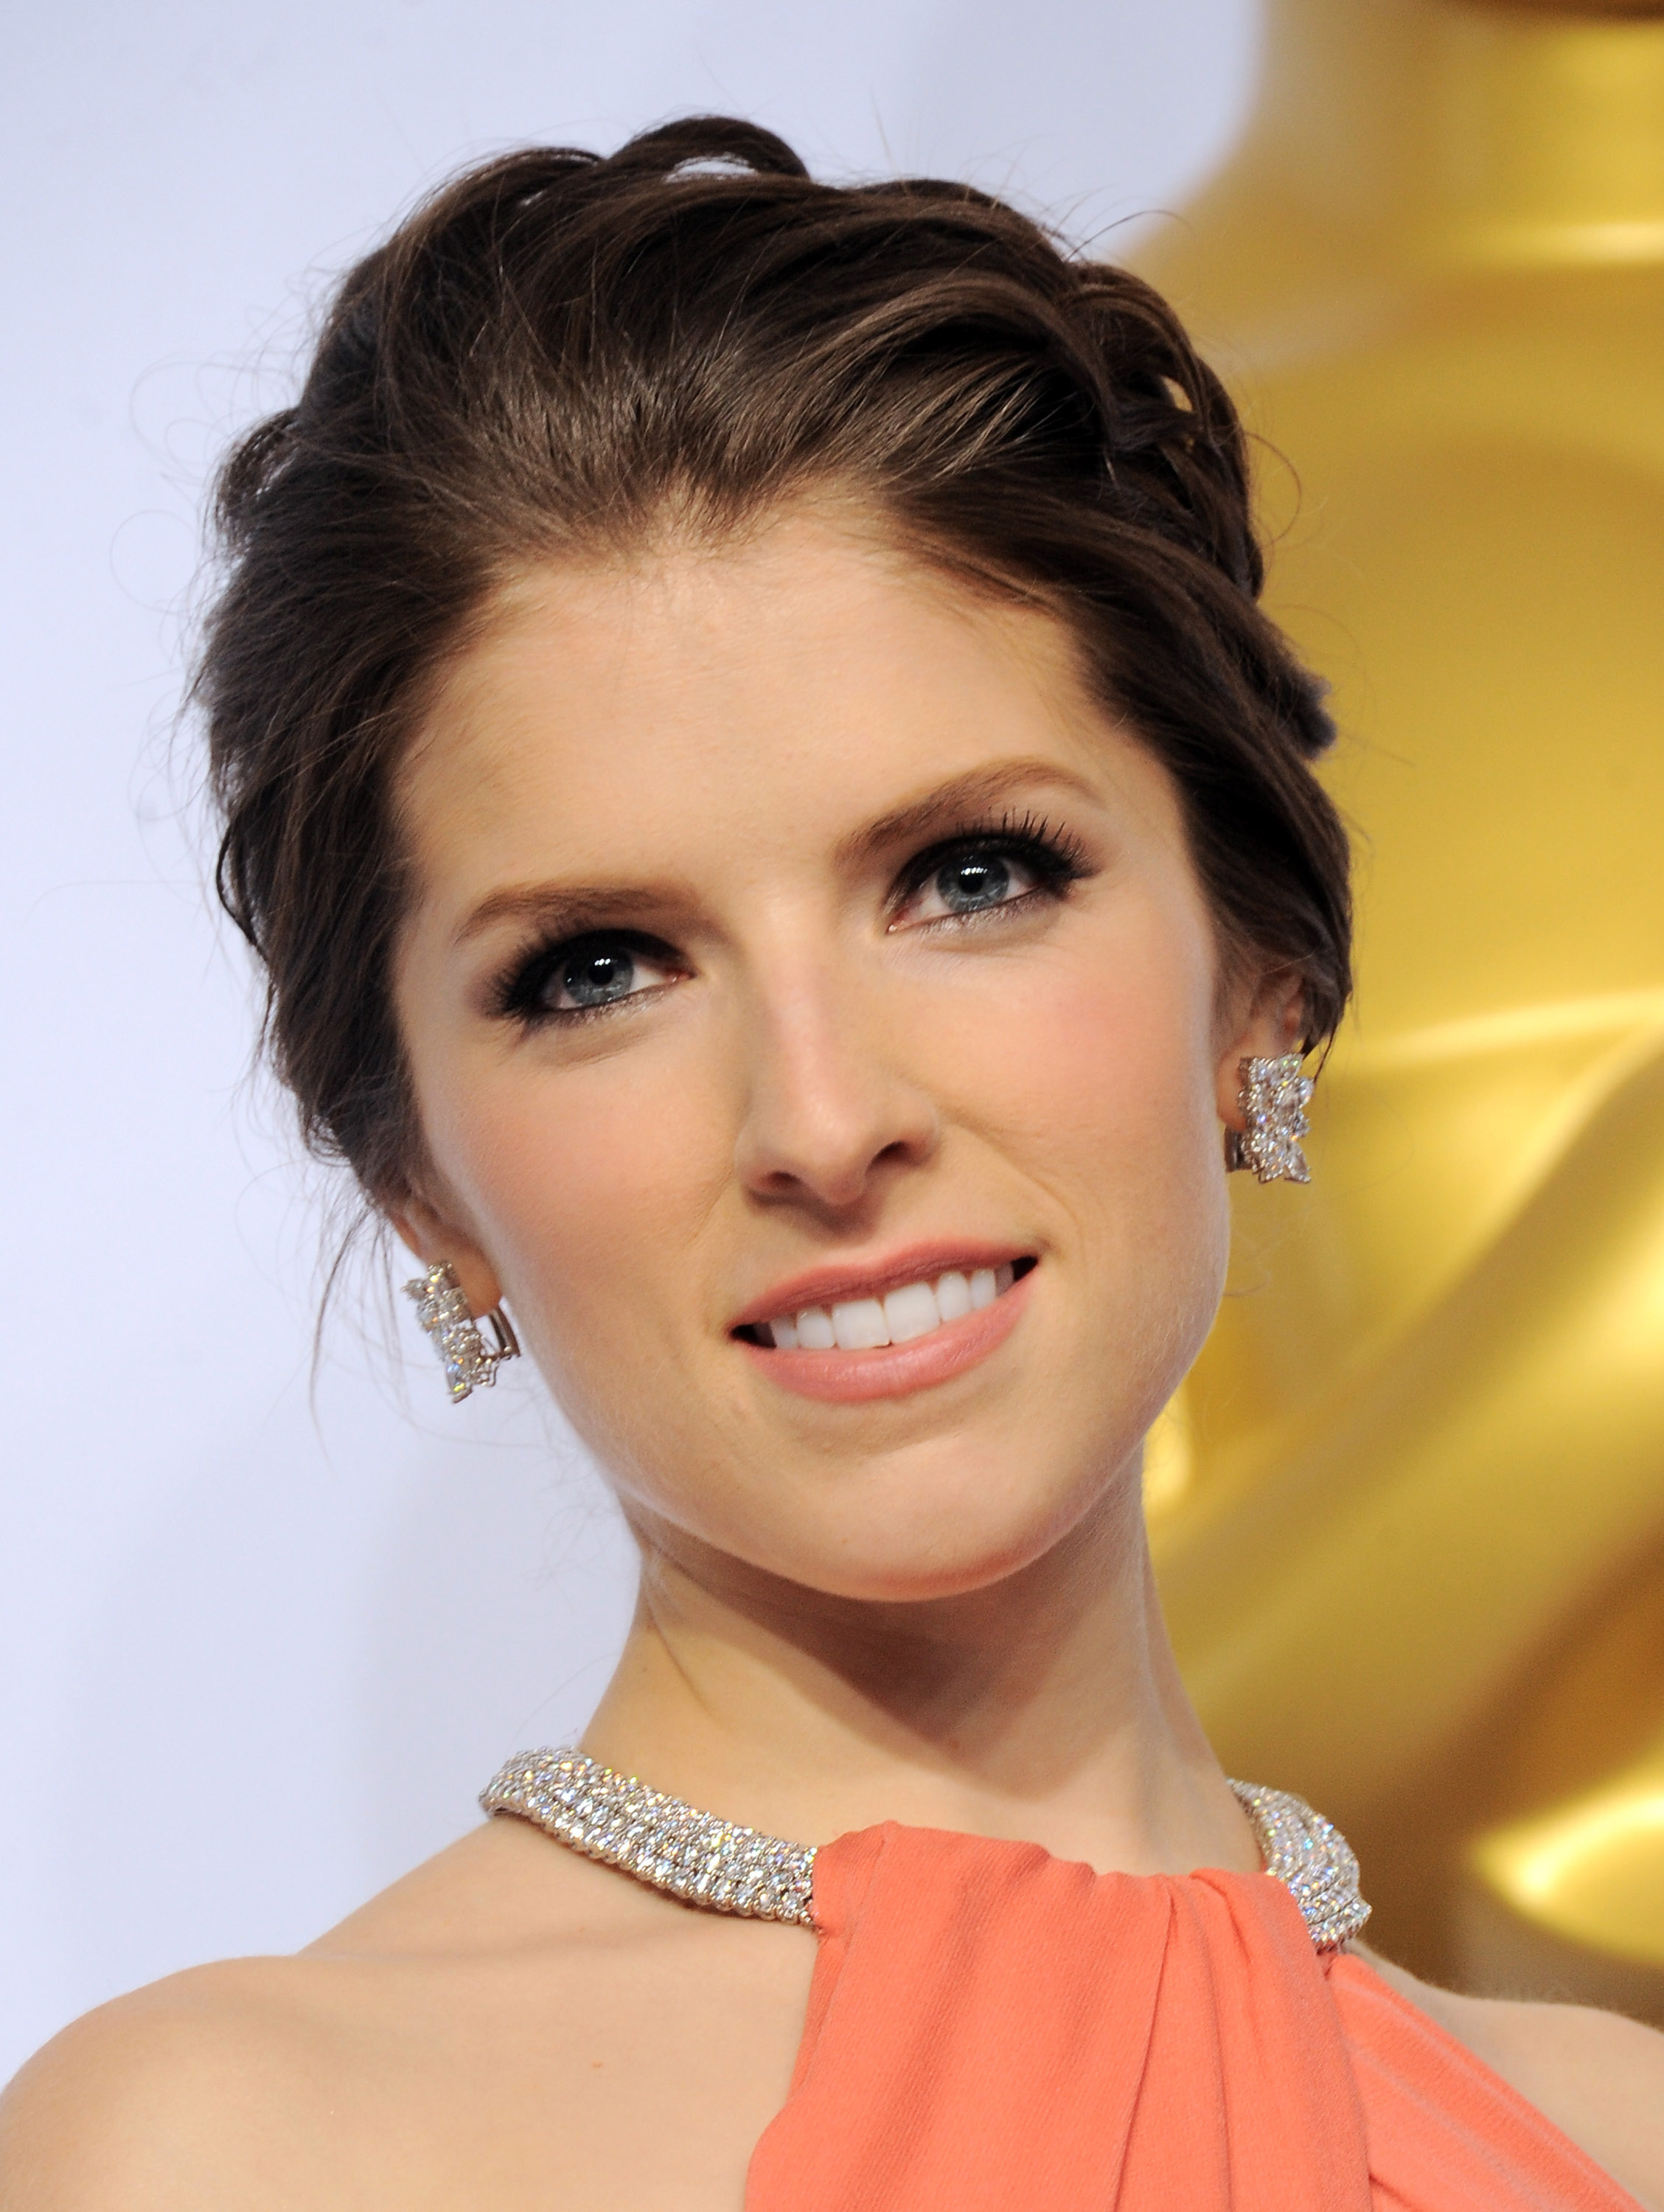 Actress Anna Kendrick poses inside the press room of the 87th Annual Academy Awards held at Loews Hollywood Hotel on February 22, 2015 in Hollywood, California.